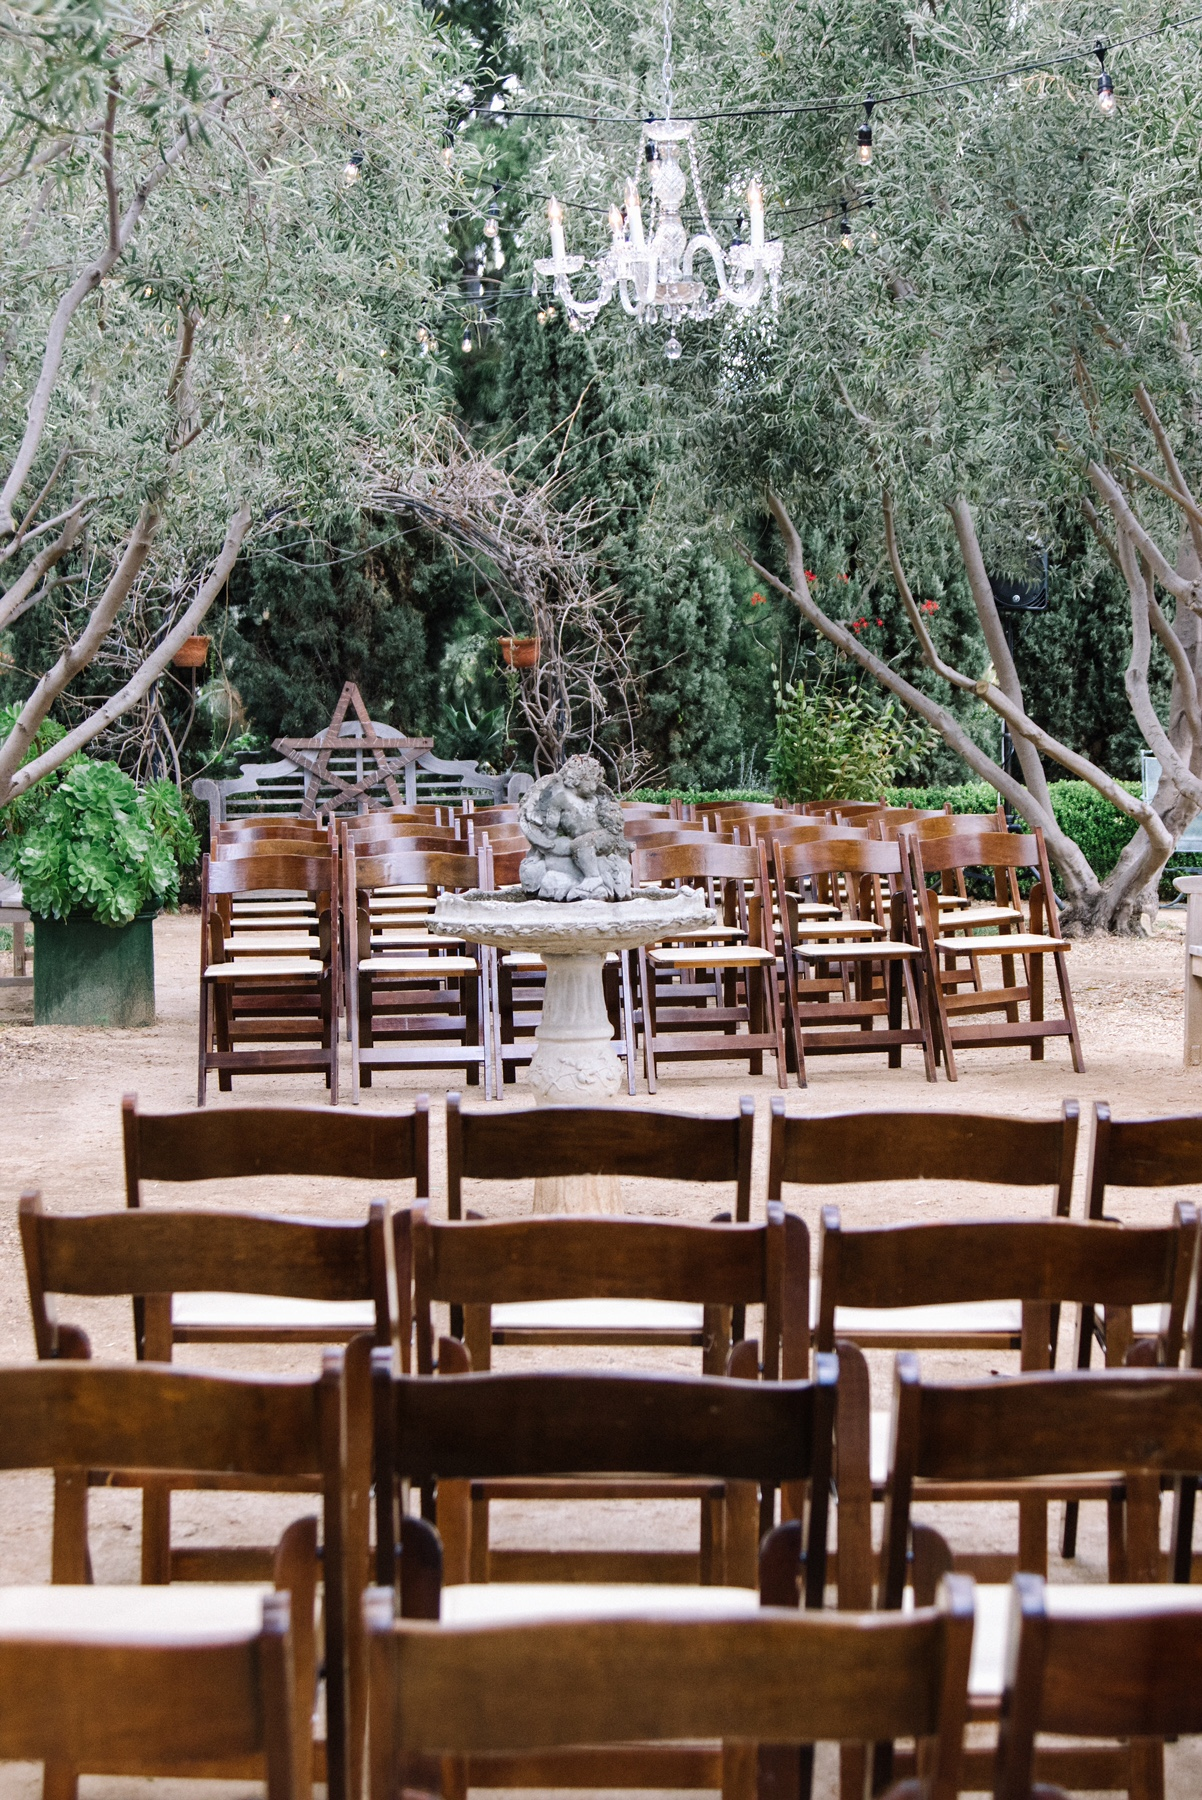 John & Estee's Arlington Garden ceremony Set Up with Chandelier 2